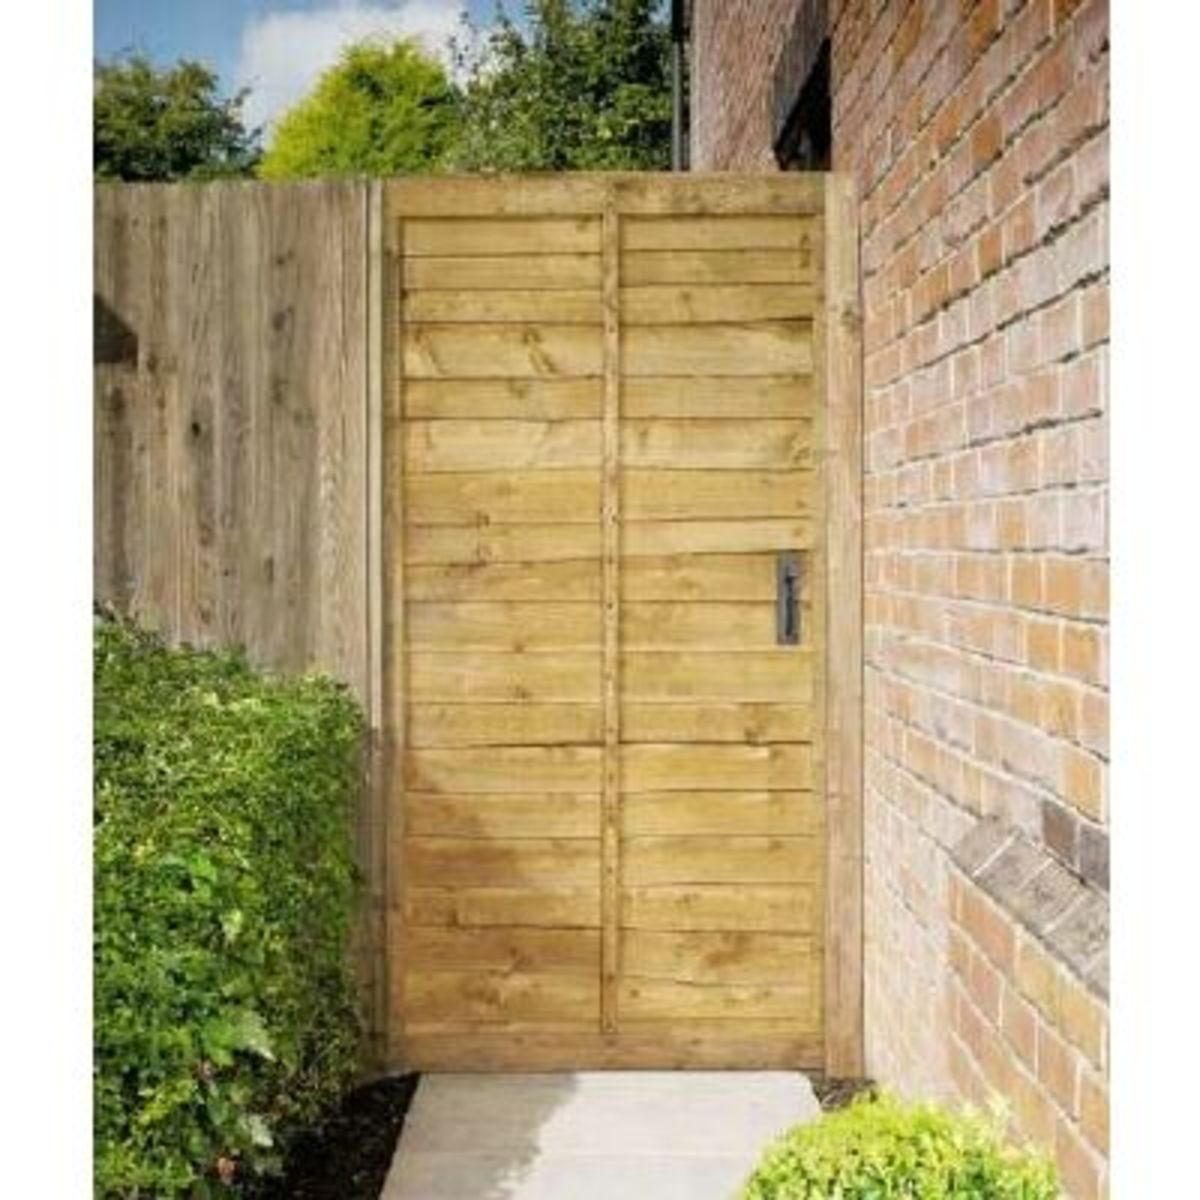 Wooden gates - Tall single side entrance wooden gates - Waney lap gate